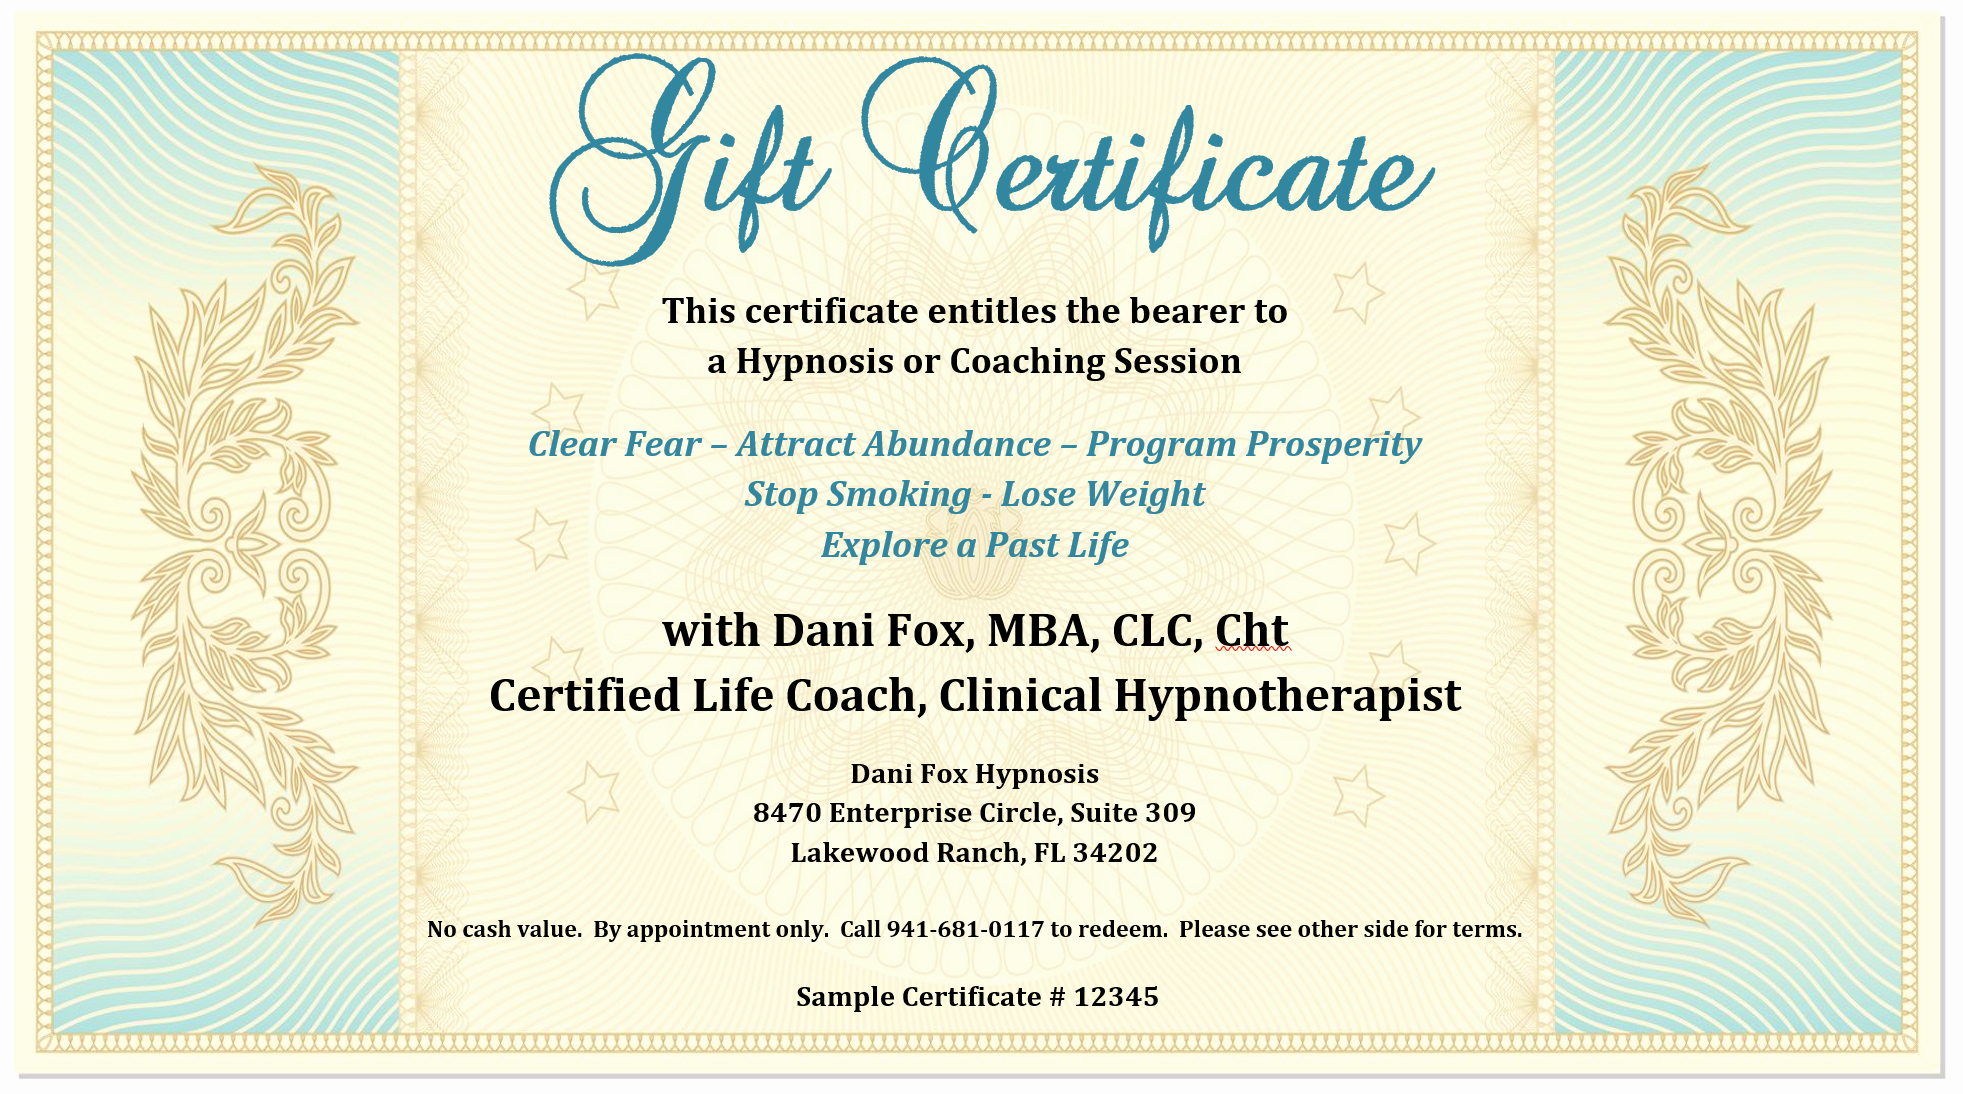 Samples Of Gift Certificate Lovely Gift Certificate Dani Fox Hypnosis